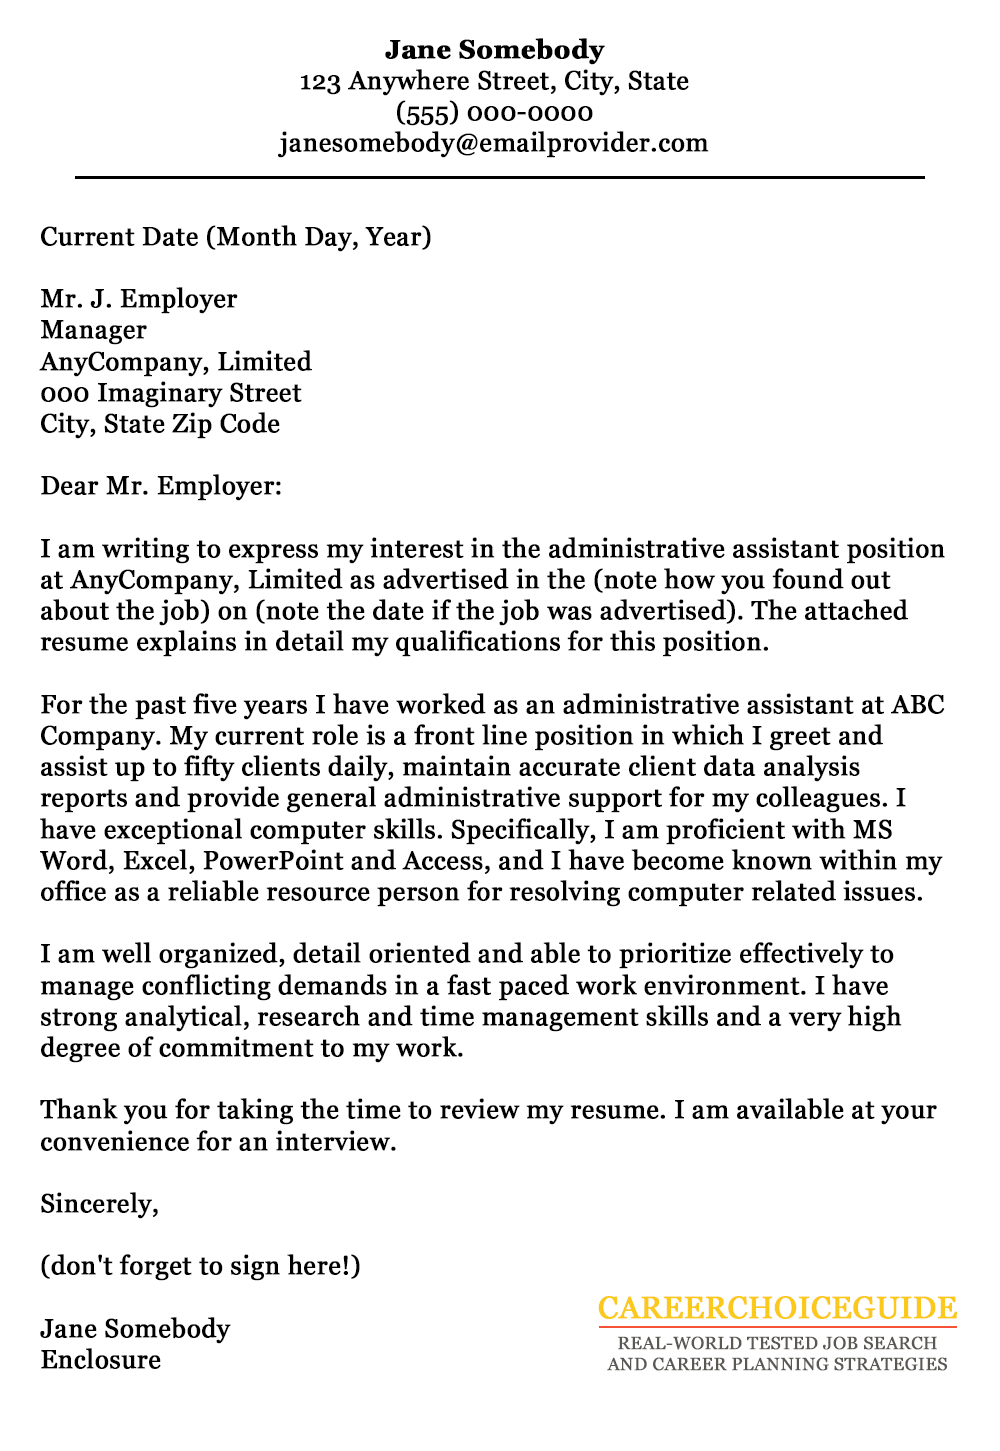 cover letter sample for an administrative assistant - Cover Letter Page